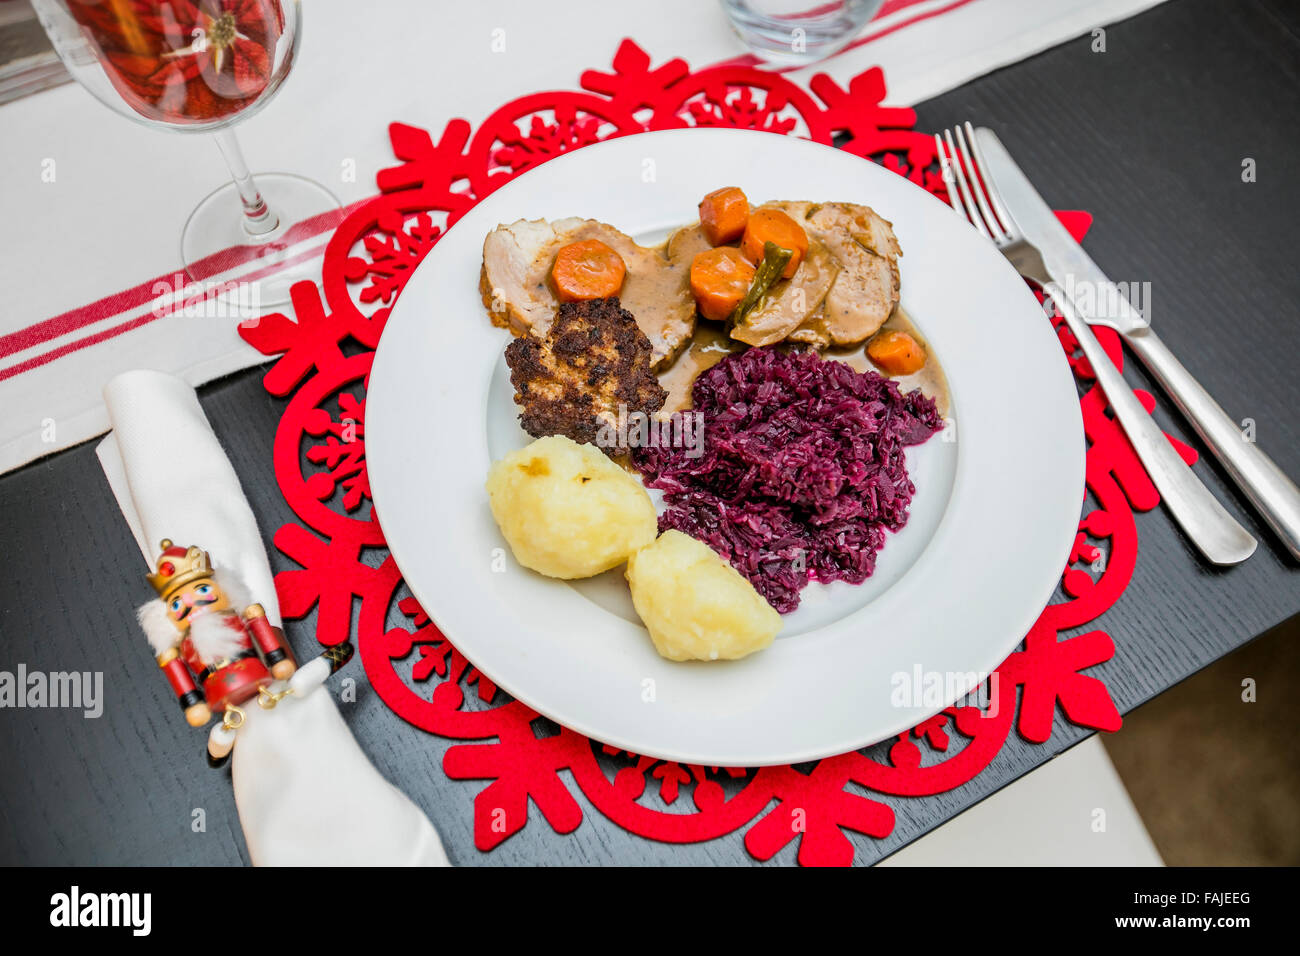 Decorated Christmas plate and table setting - Stock Image